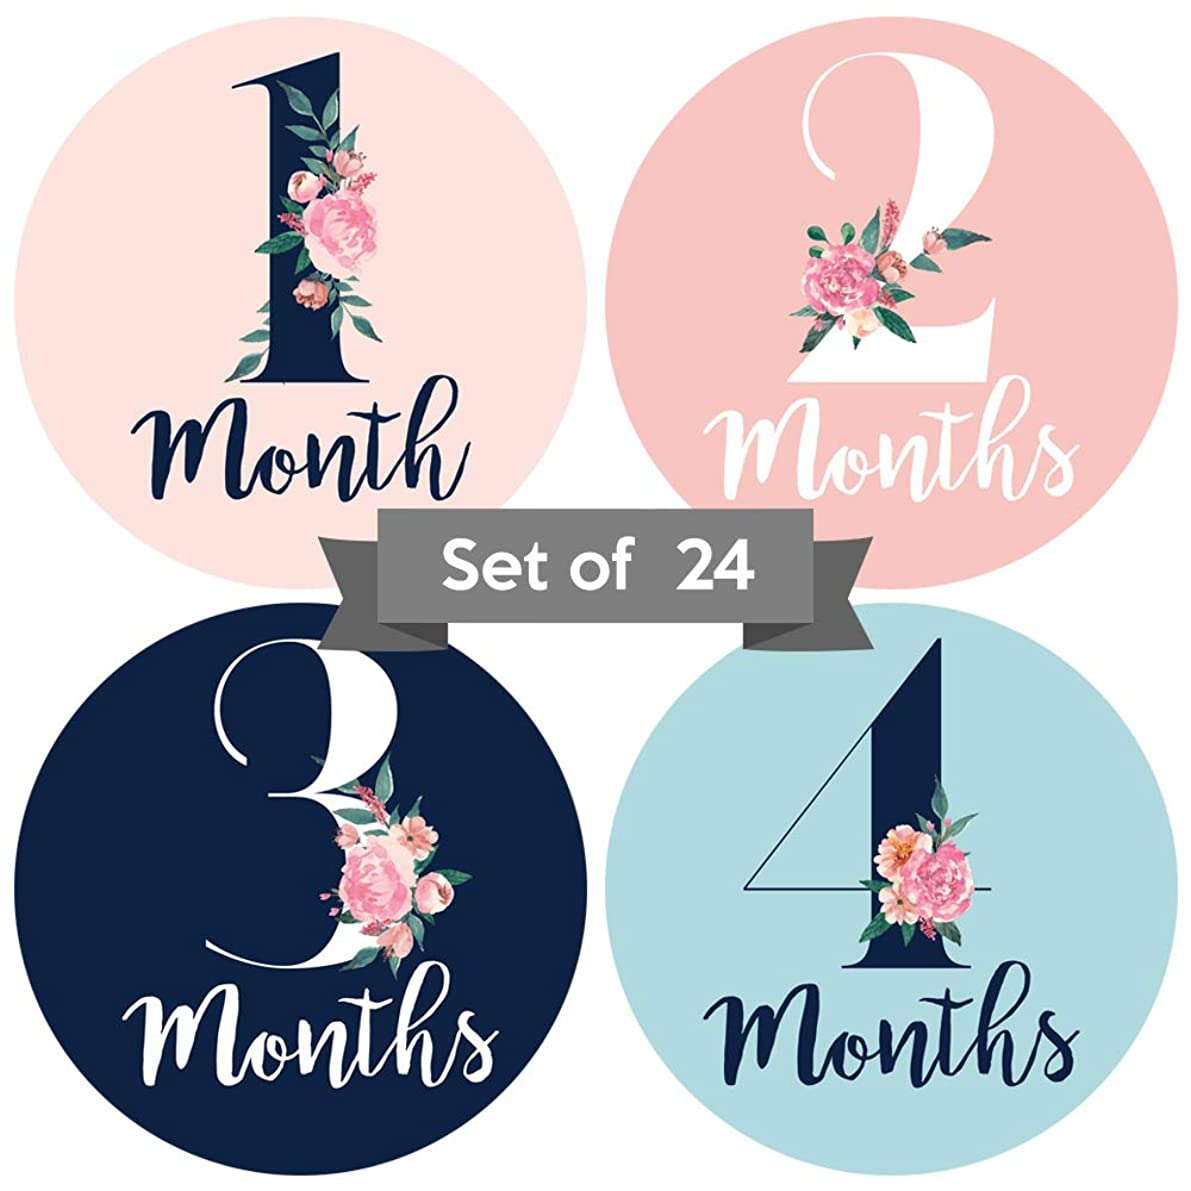 Baby Monthly Stickers | Floral Baby Milestone Stickers | (Set of 24) | Newborn Girl Stickers | Month Stickers for Baby Girl | Baby Girl Stickers | Newborn Monthly Milestone Stickers (Set of 24)